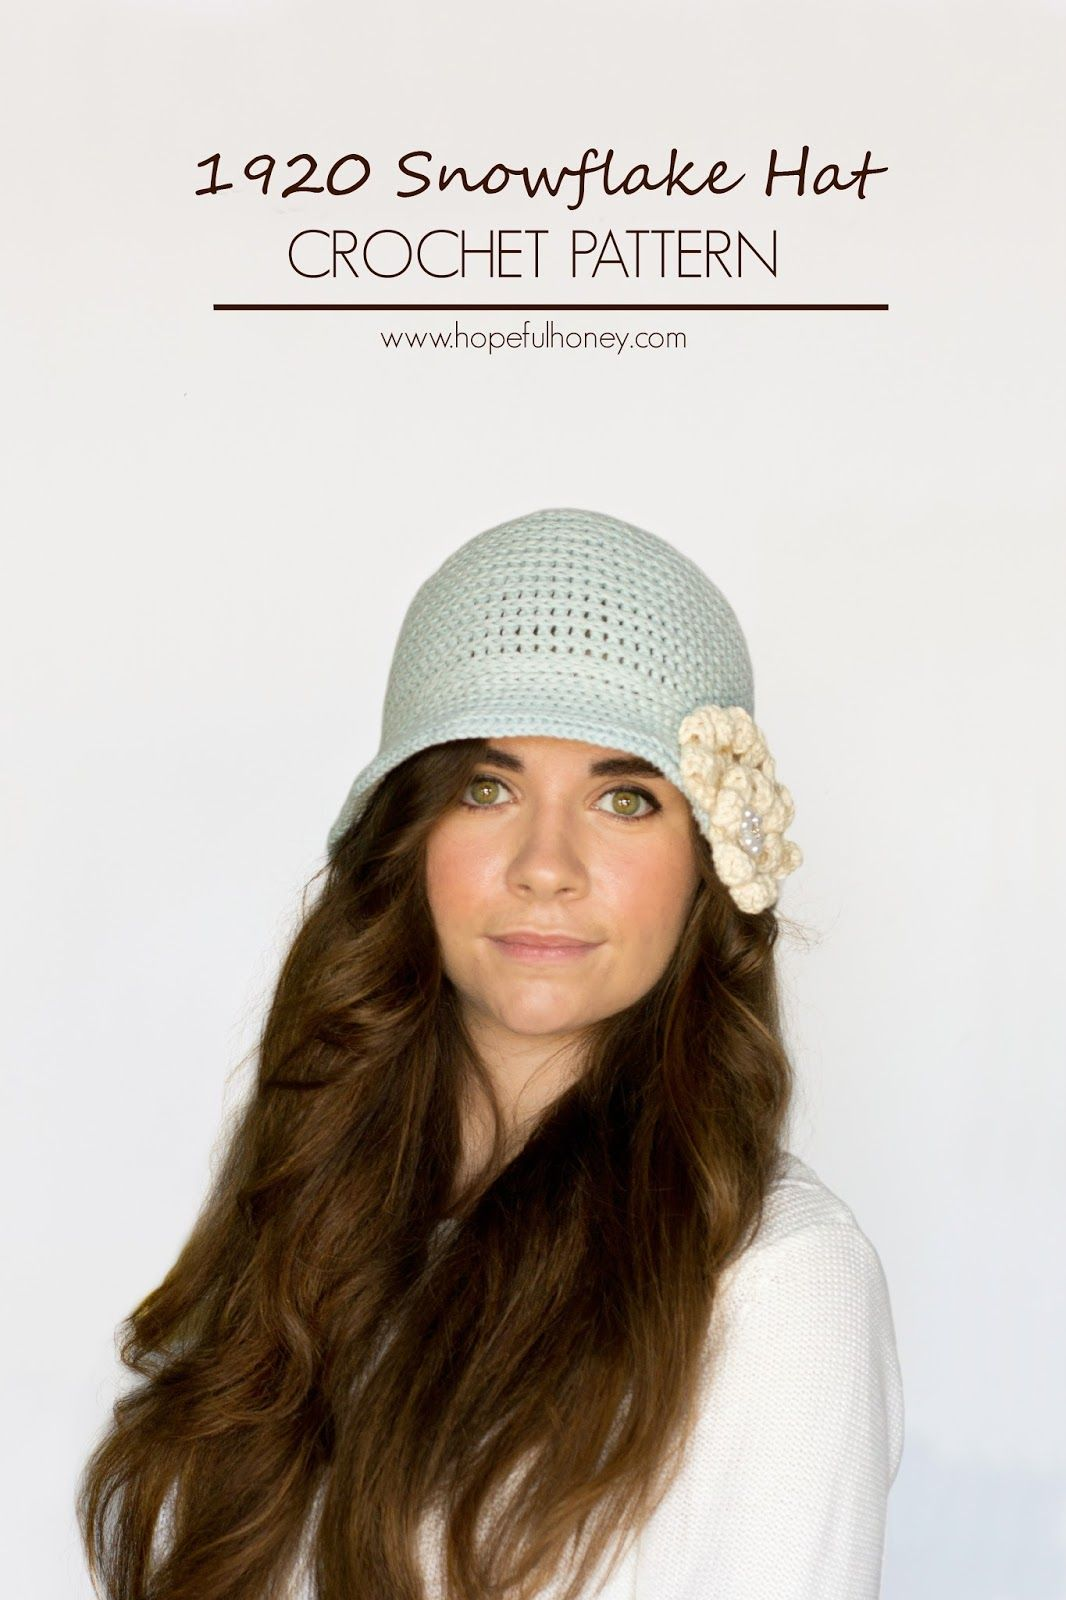 1920\'s Snowflake Cloche Hat Crochet Pattern | Gorros, Ganchillo y ...